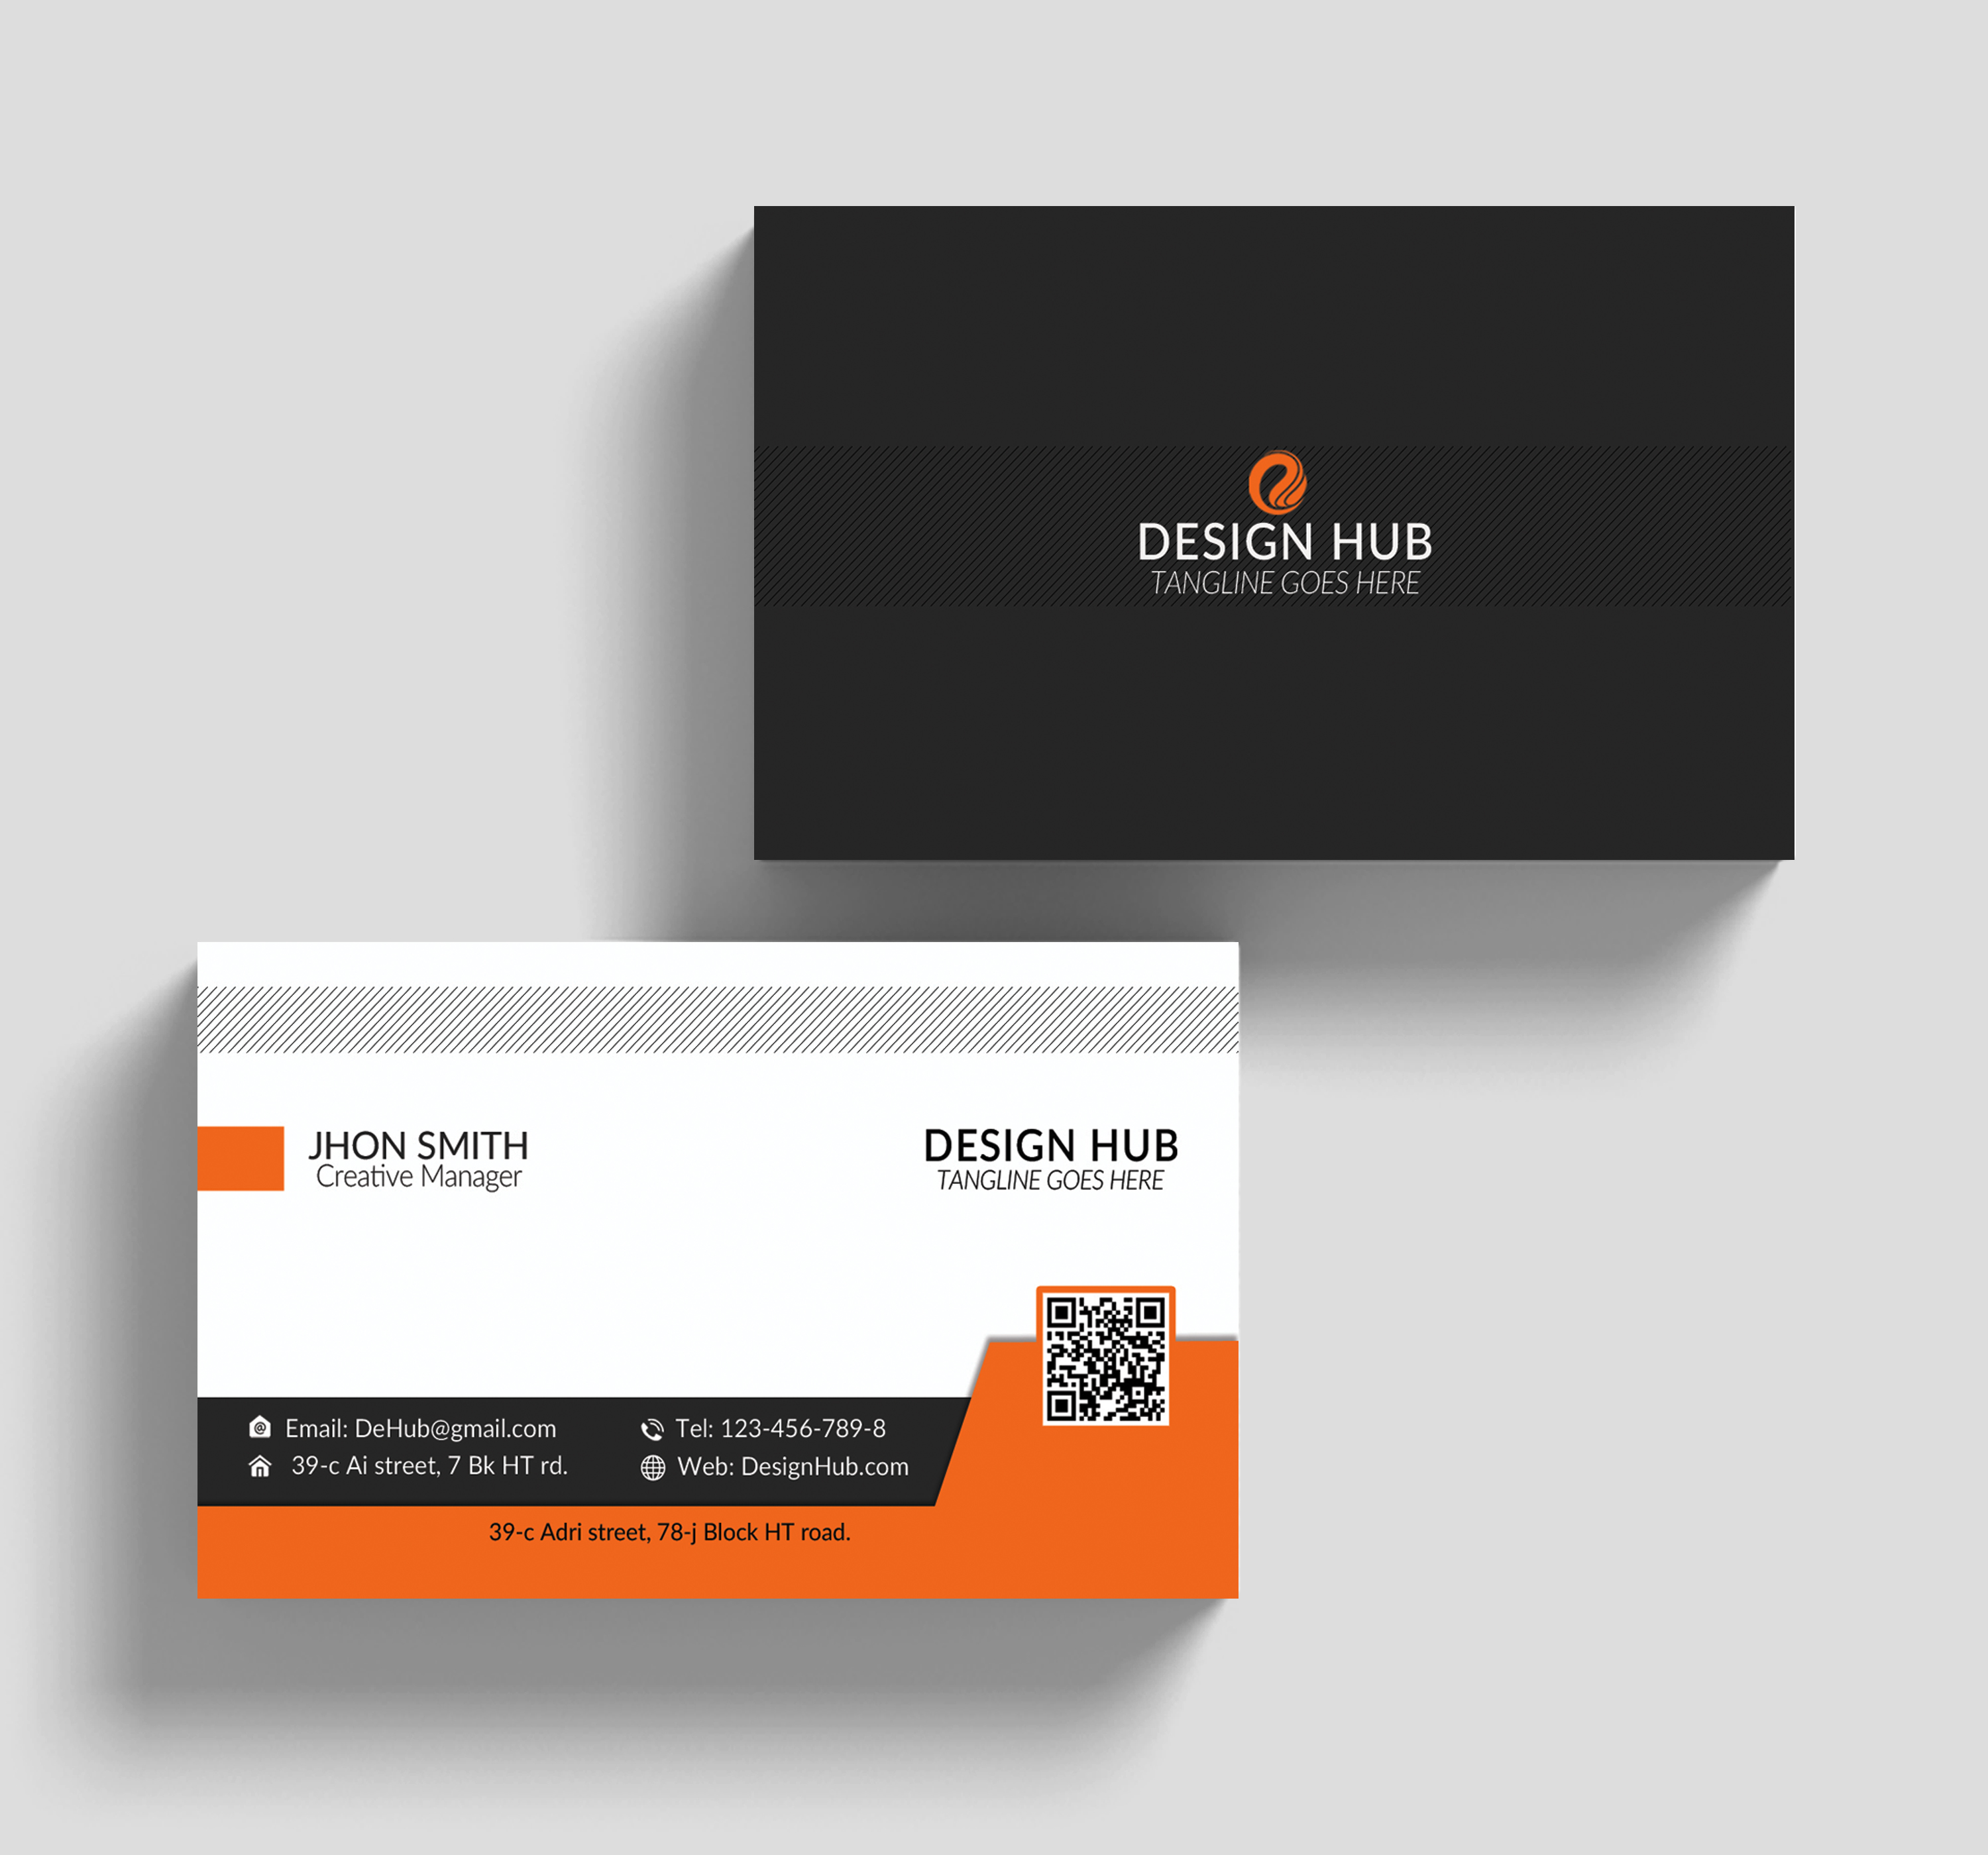 Business Visitig Cards example image 3